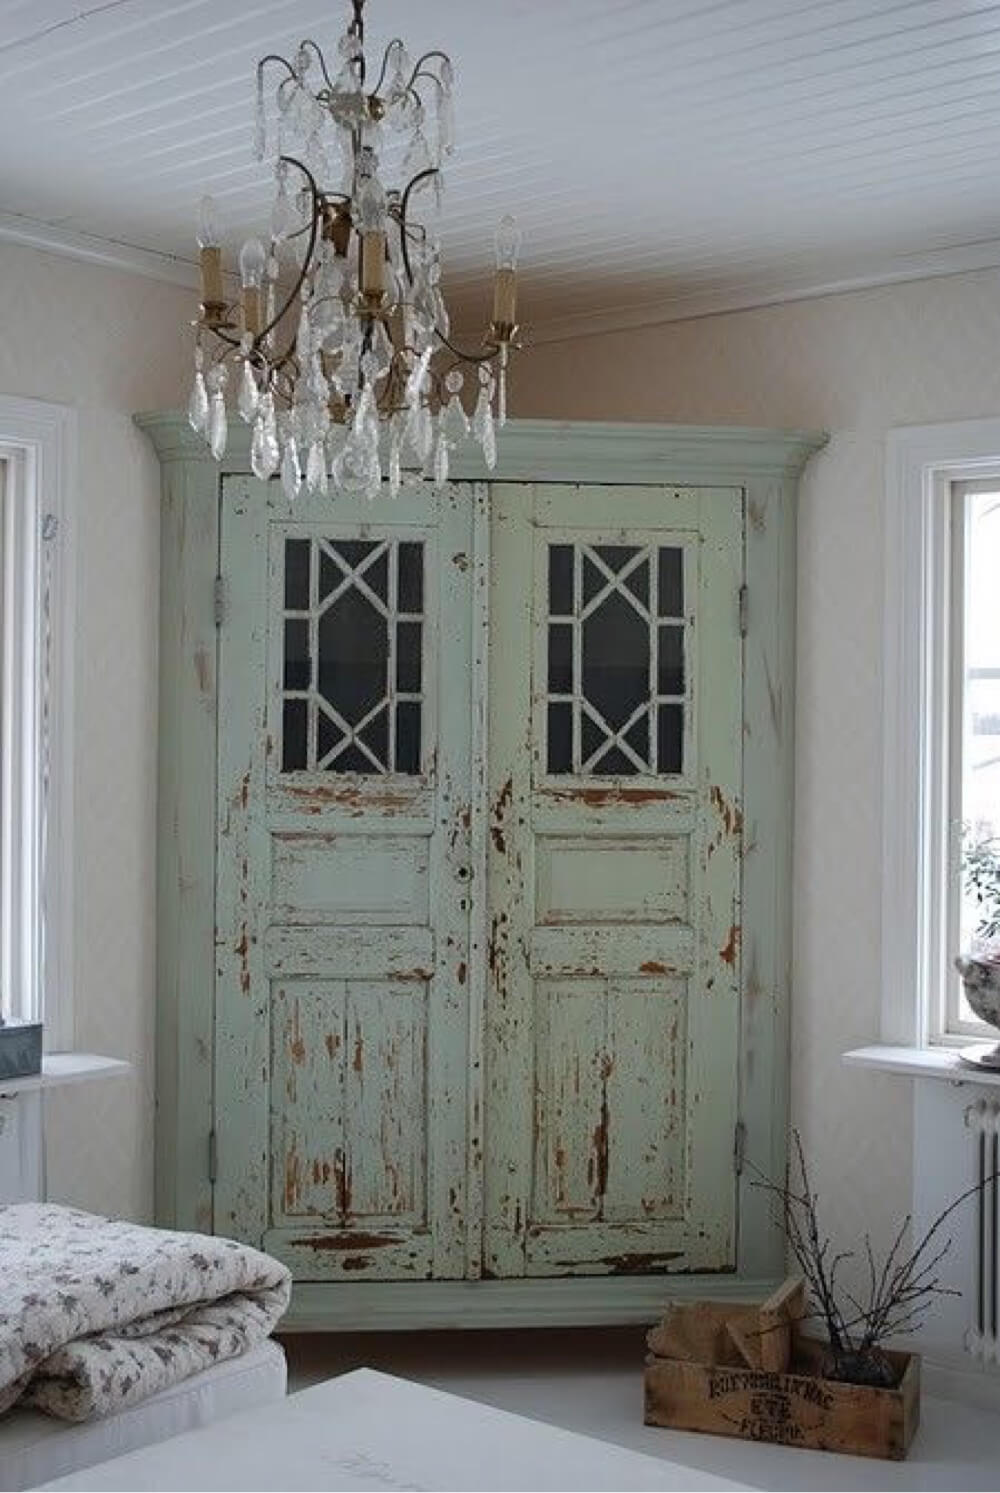 4 Custom Corner Wardrobe Made From Distressed Doors